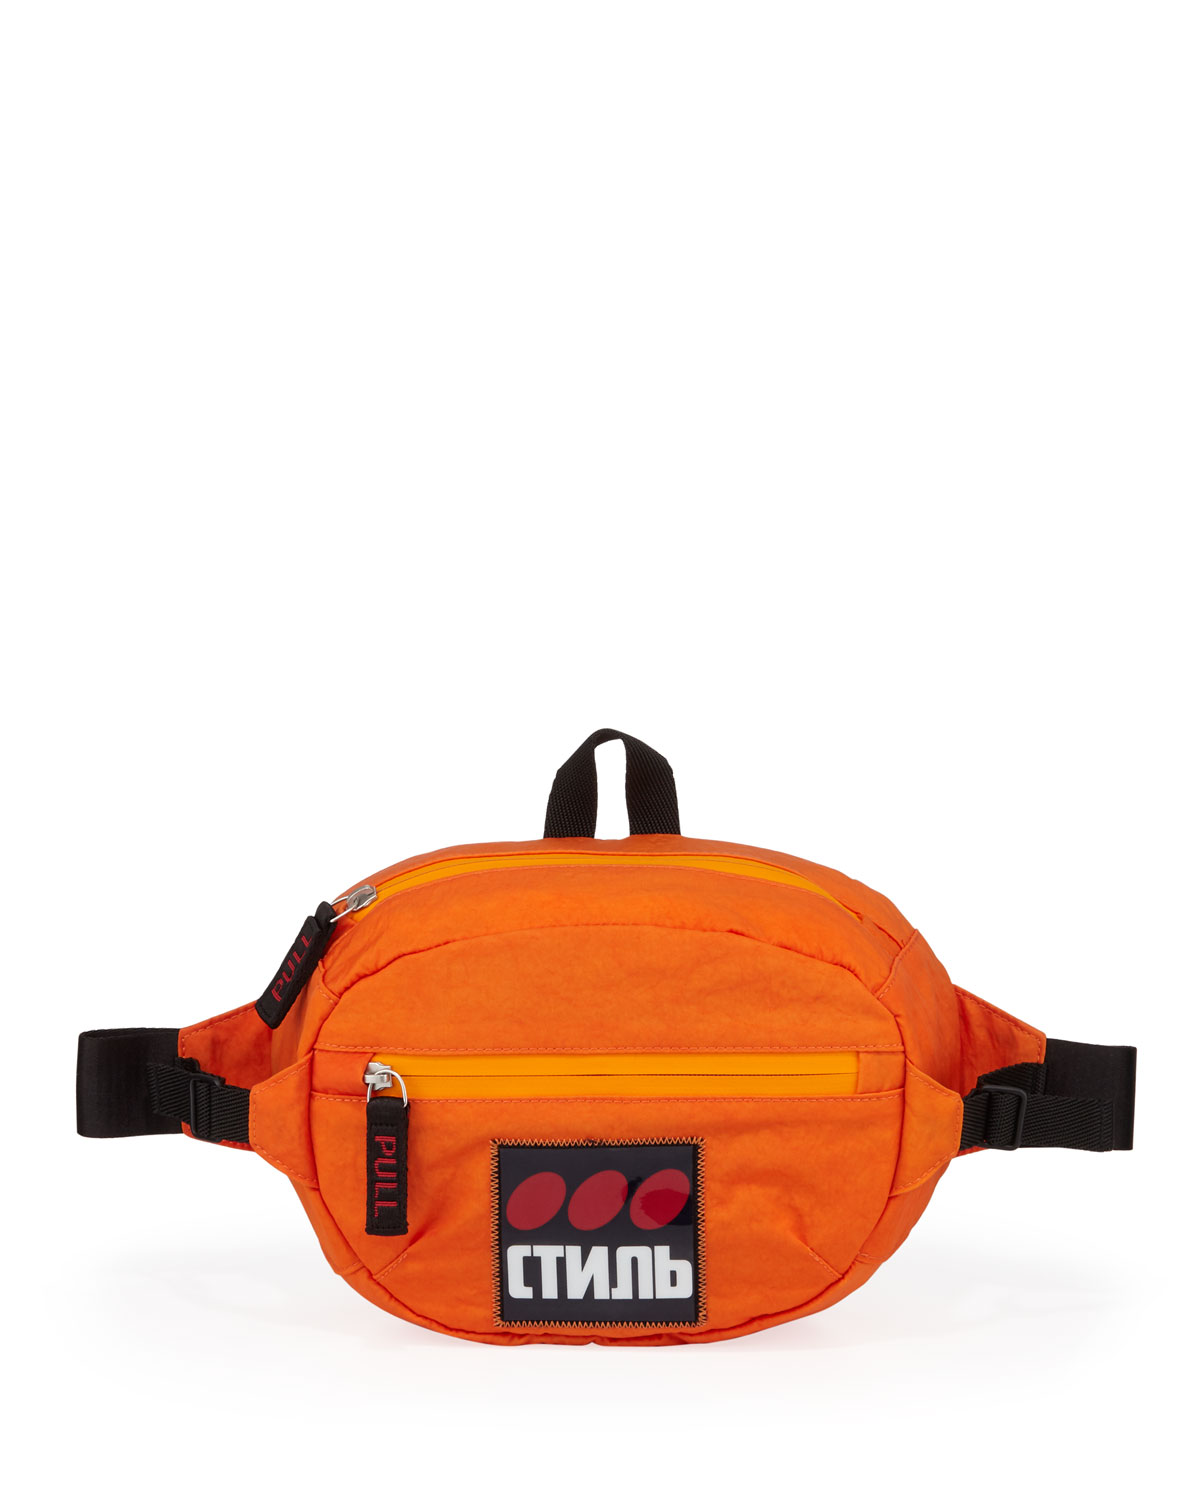 Heron Preston Belt Men's CTNMB Dots Logo Belt Bag/Fanny Pack